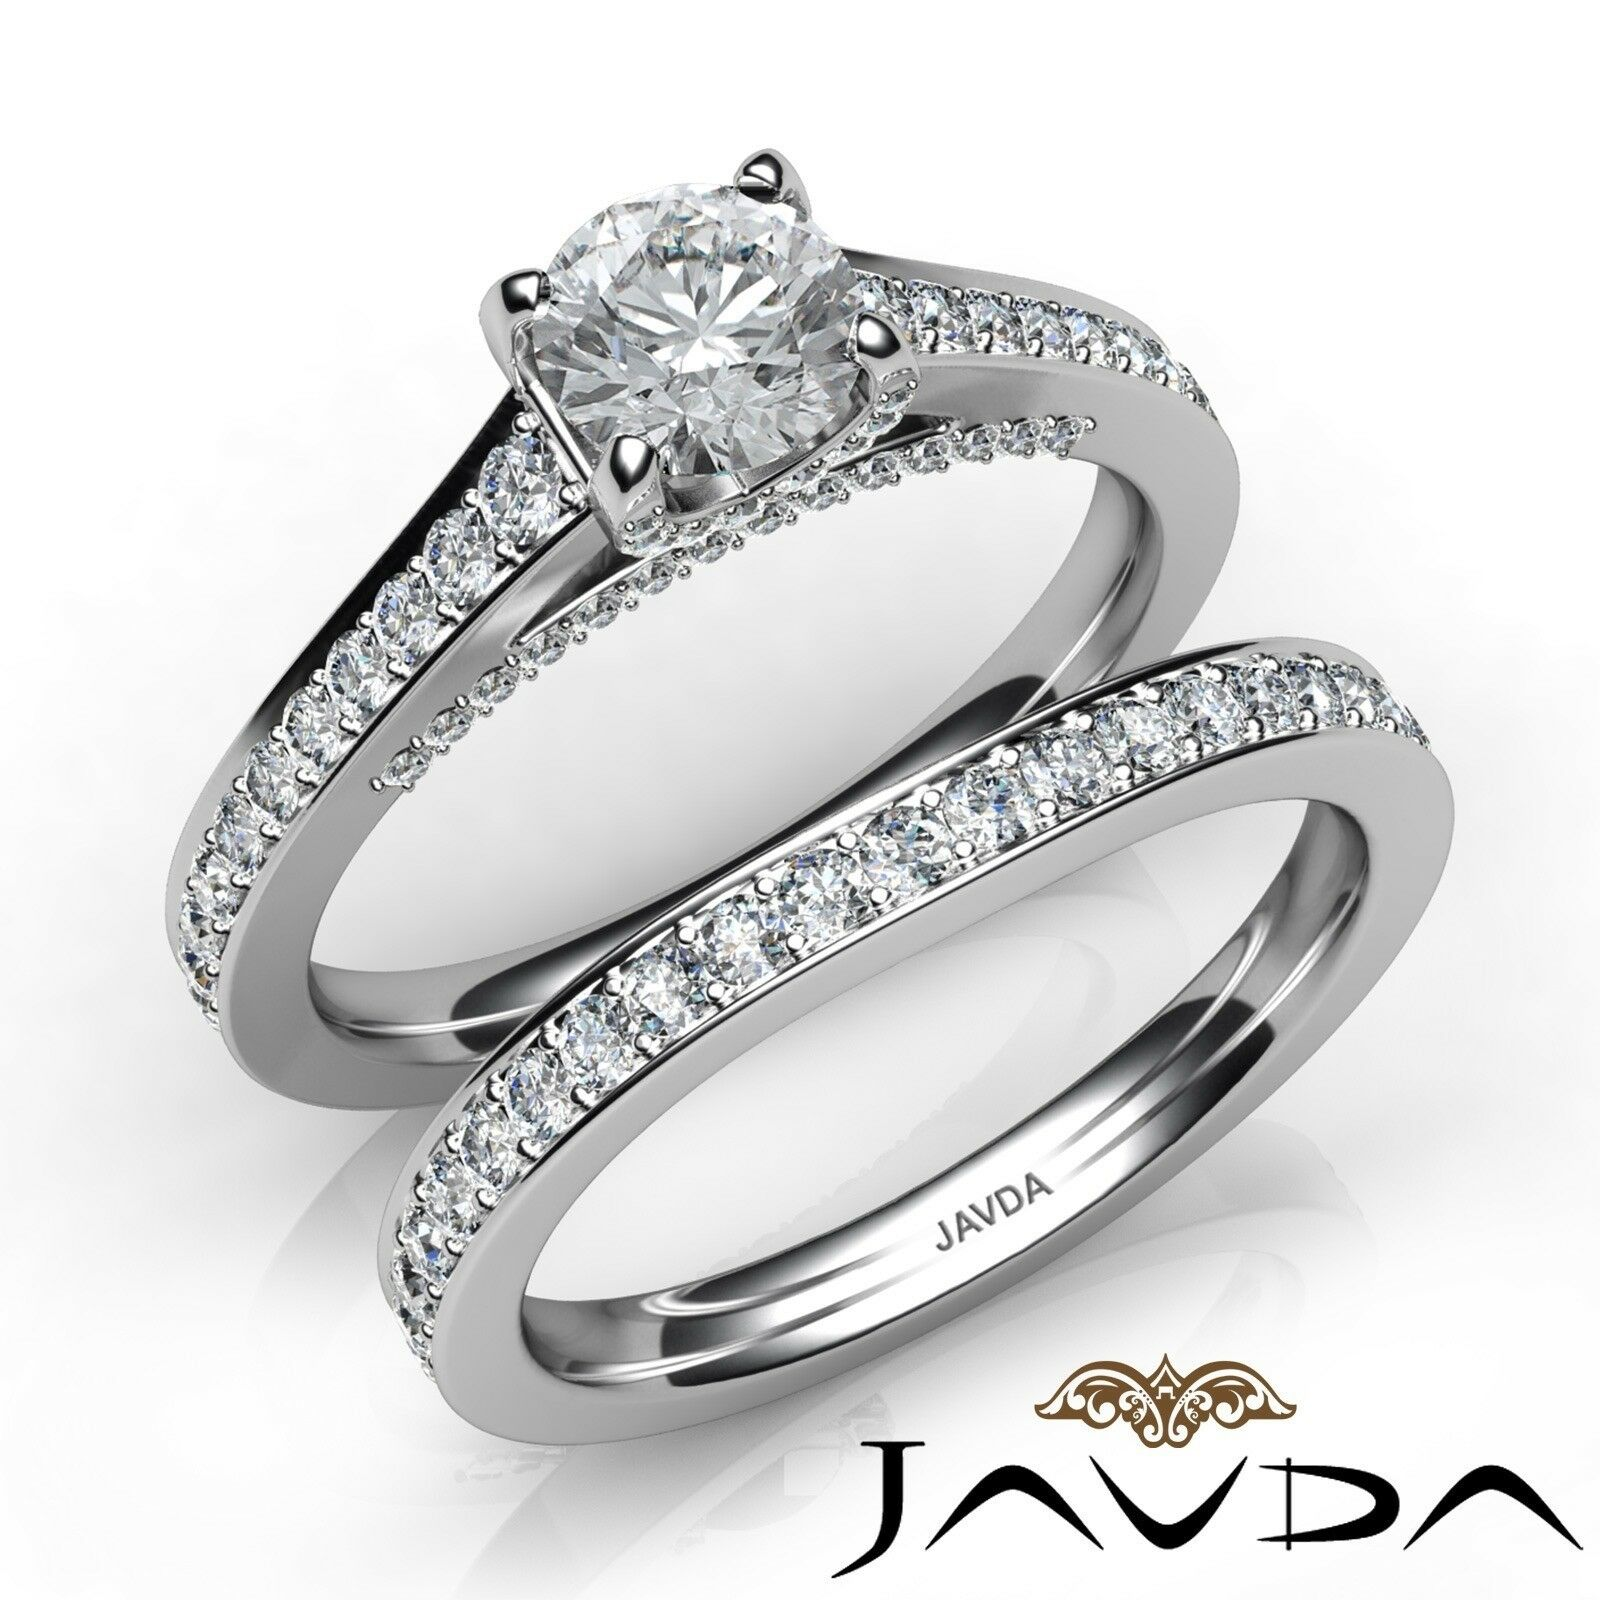 1.91ctw Pave Classic Bridal Set Round Diamond Engagement Ring GIA H-VVS1 W Gold